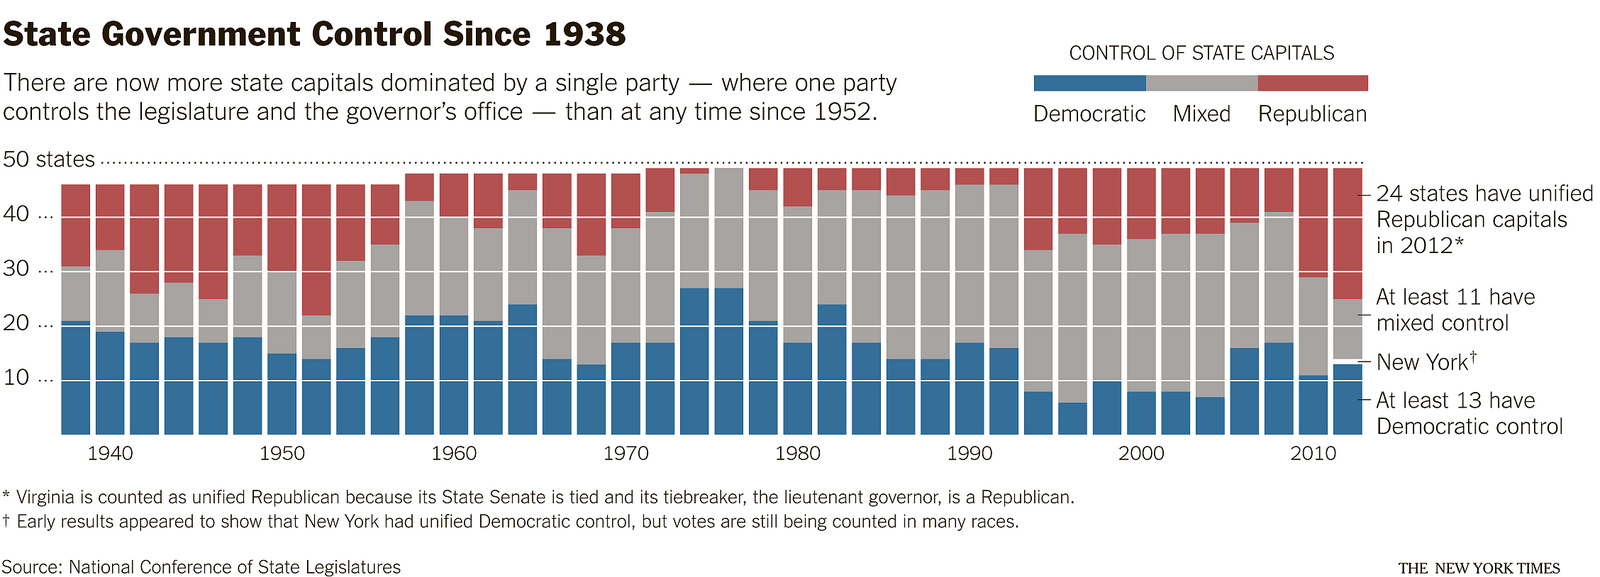 http://f.hypotheses.org/wp-content/blogs.dir/253/files/2013/01/nyt-chartsnthings-3.jpg